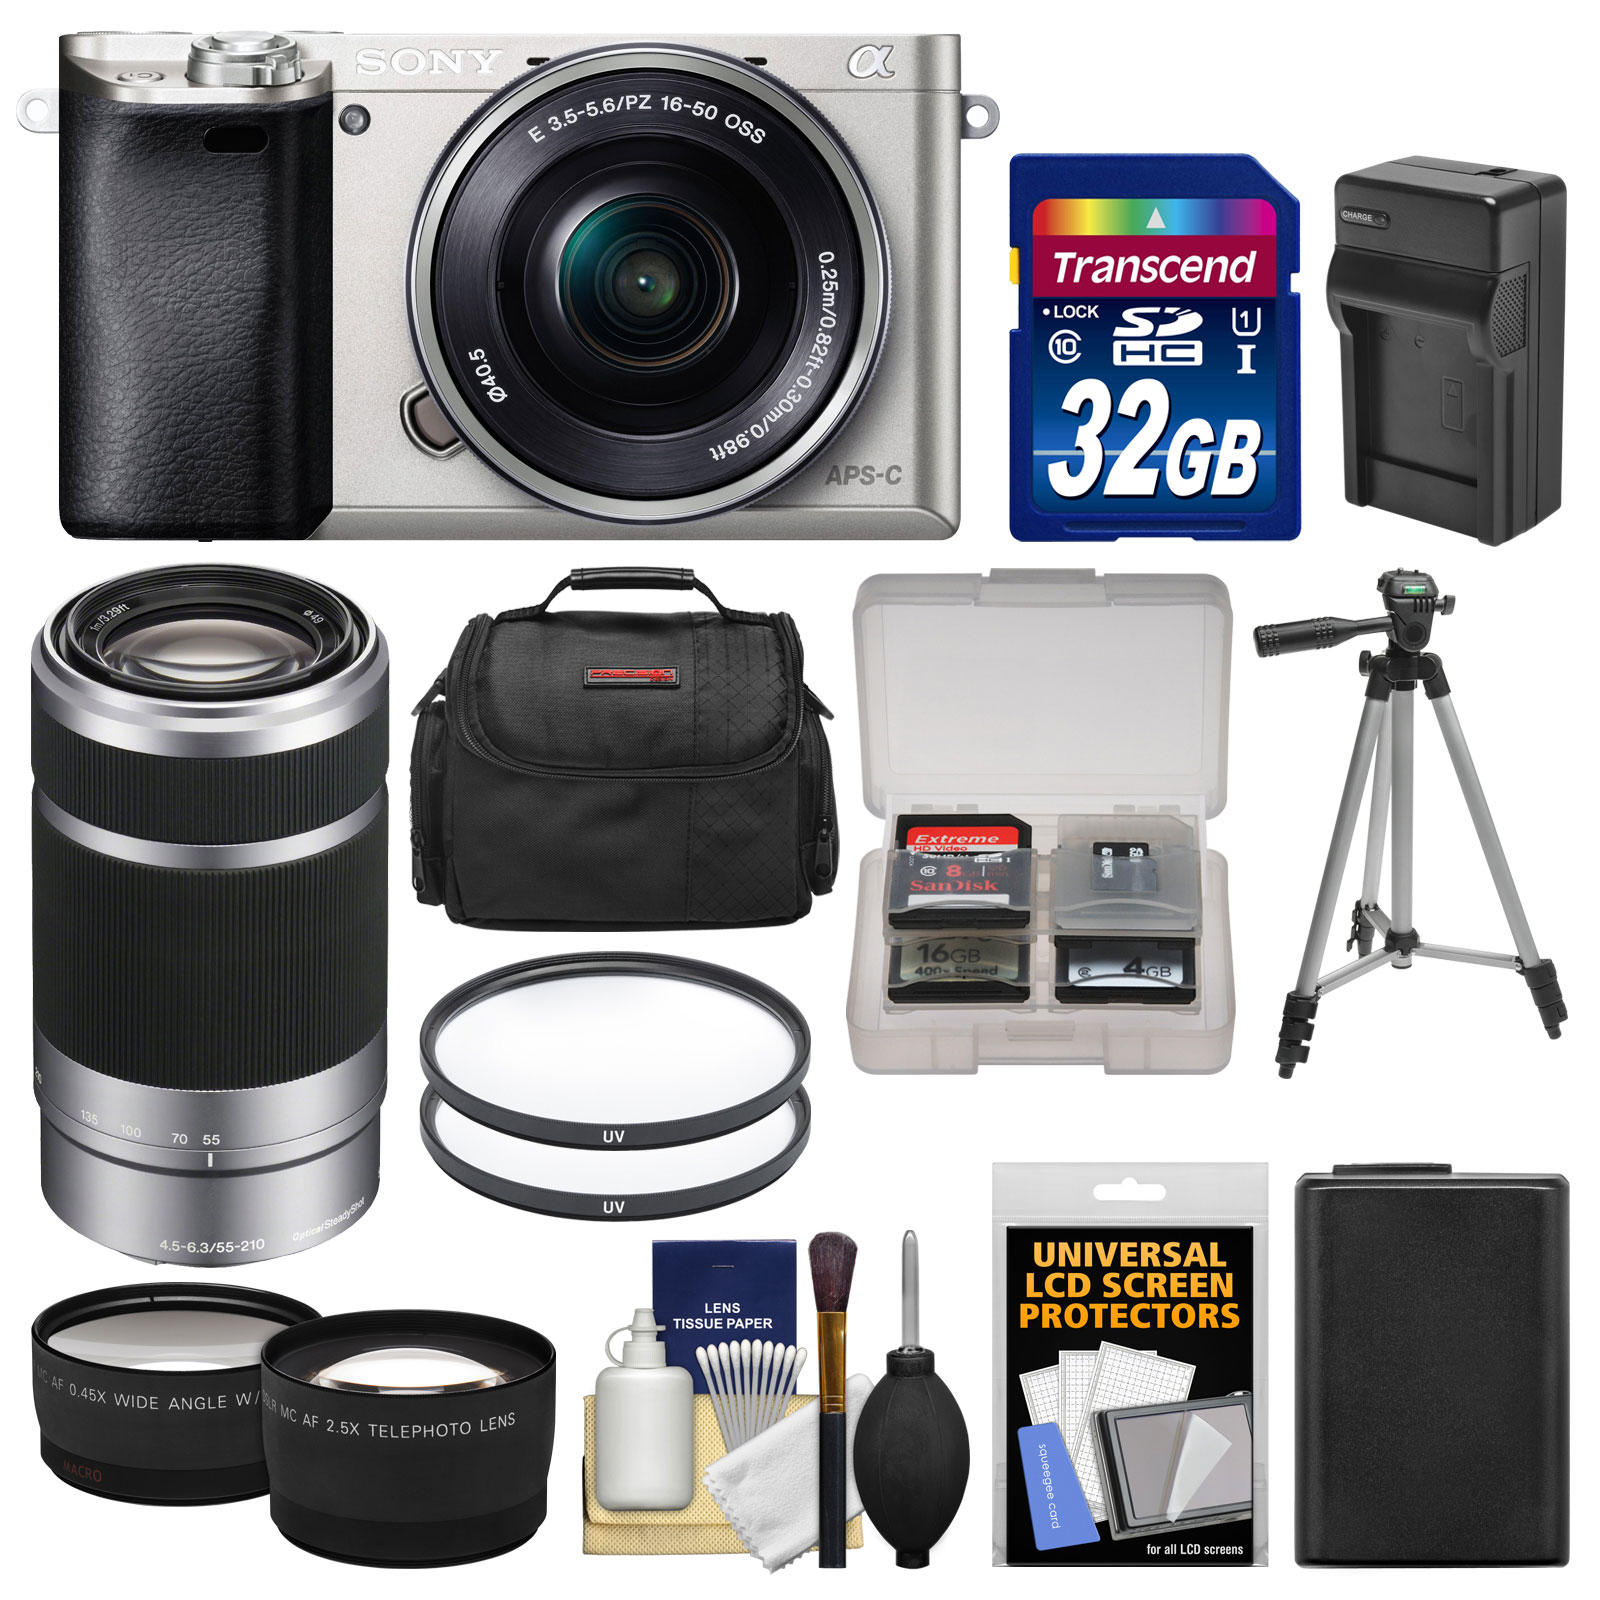 Sony Alpha A6000 Wi-Fi Digital Camera & 16-50mm Lens (White) with 55-210mm Lens + 32GB Card + Case + Battery/Charger + Tripod + Tele/Wide Lens Kit